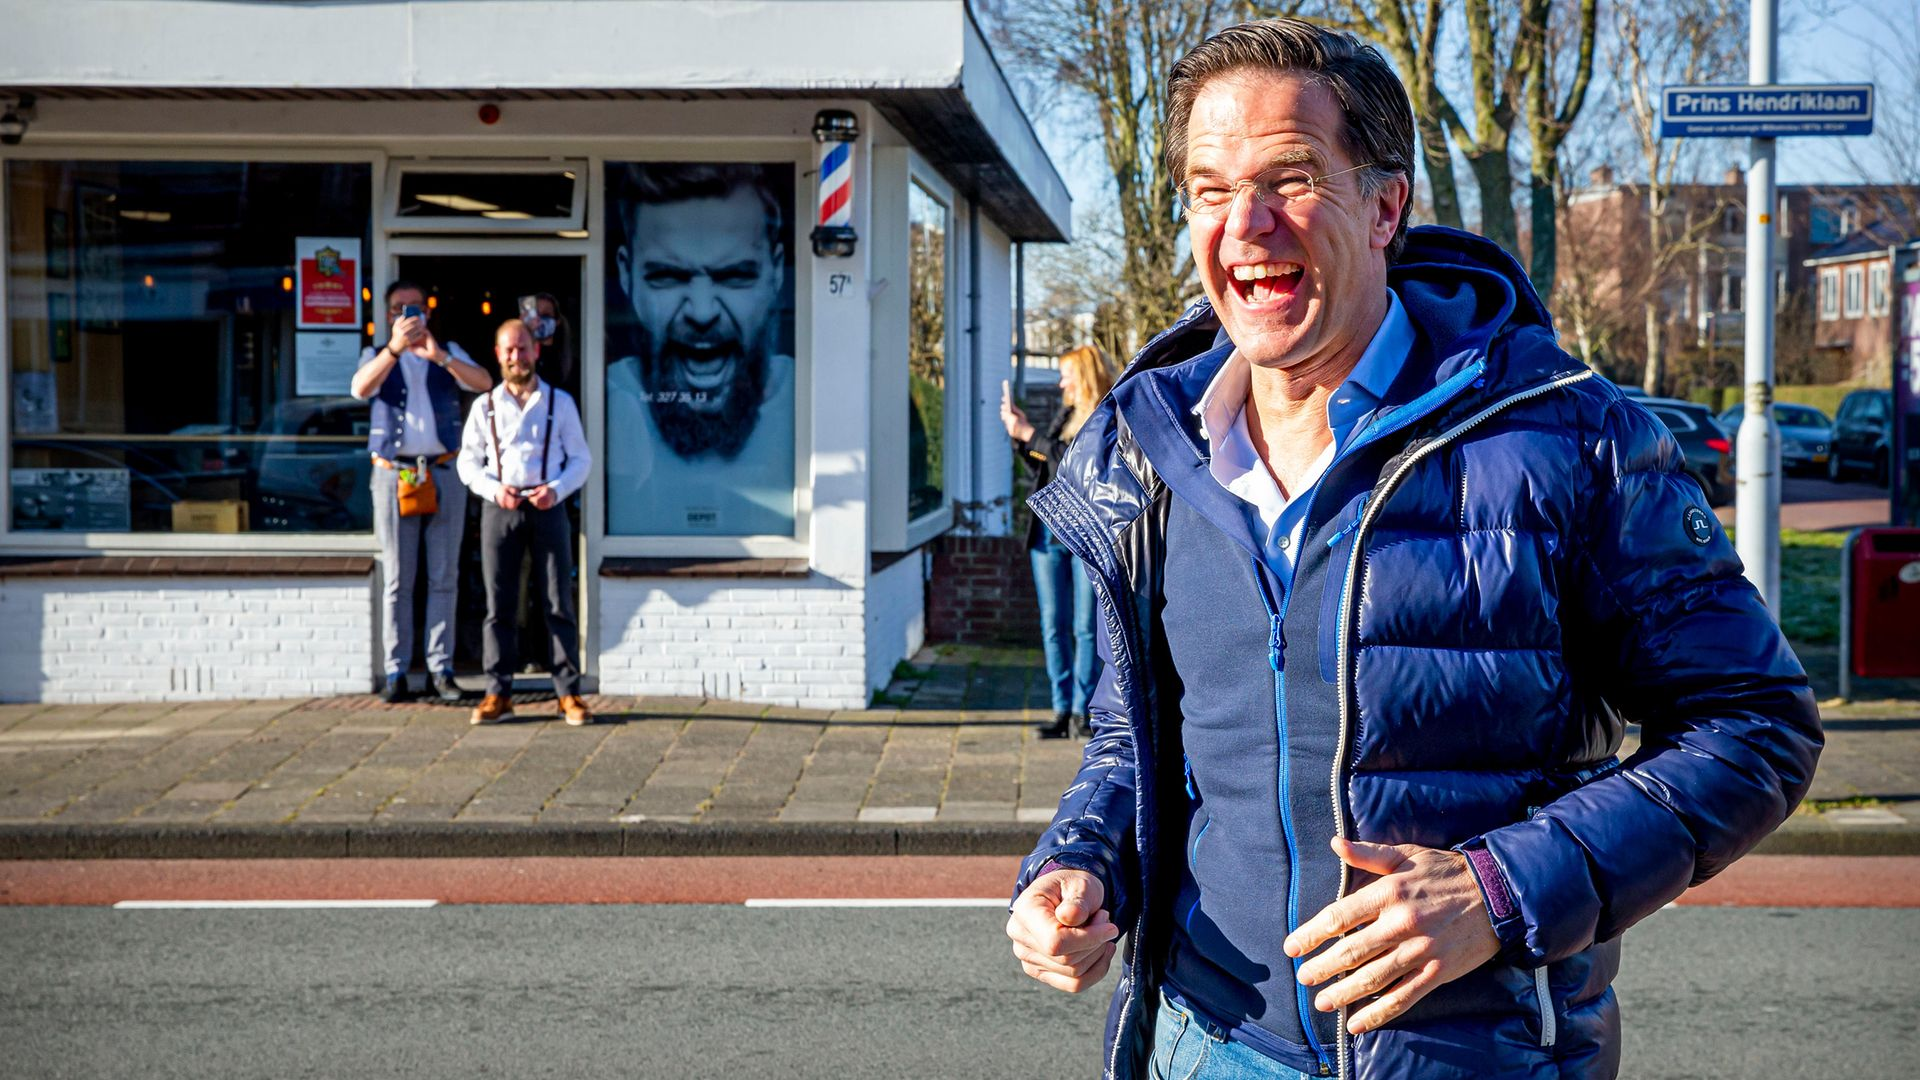 A buoyant Mark Rutte visits his hairdresser in Leidschendam after lockdown, during campaigning for the elections - Credit: Getty Images